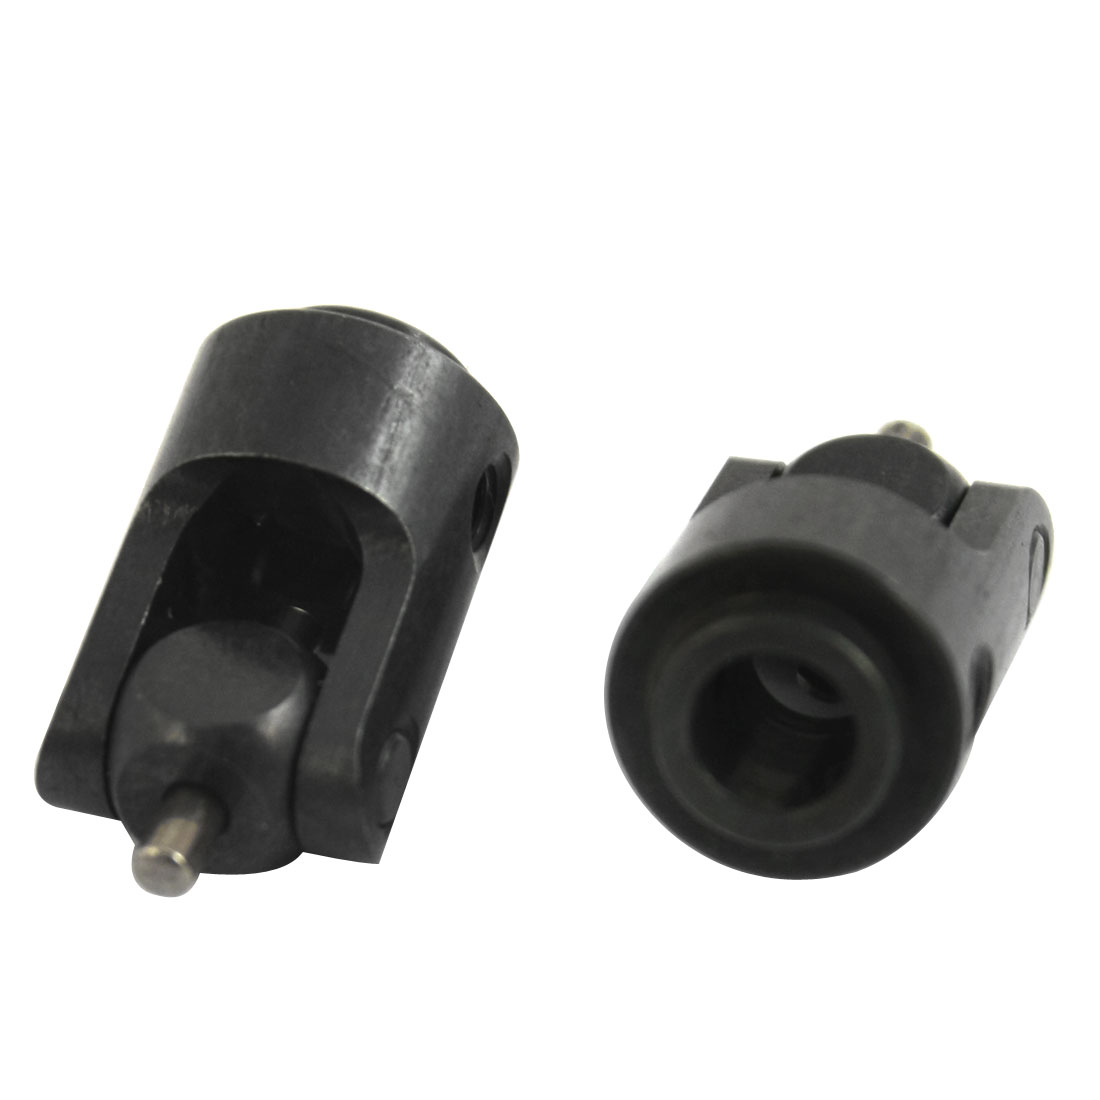 2Pcs 5mm x 11mm x 21mm Universal Black Metal Joint Coupling Adapter Connector for RC Model Boat Ship